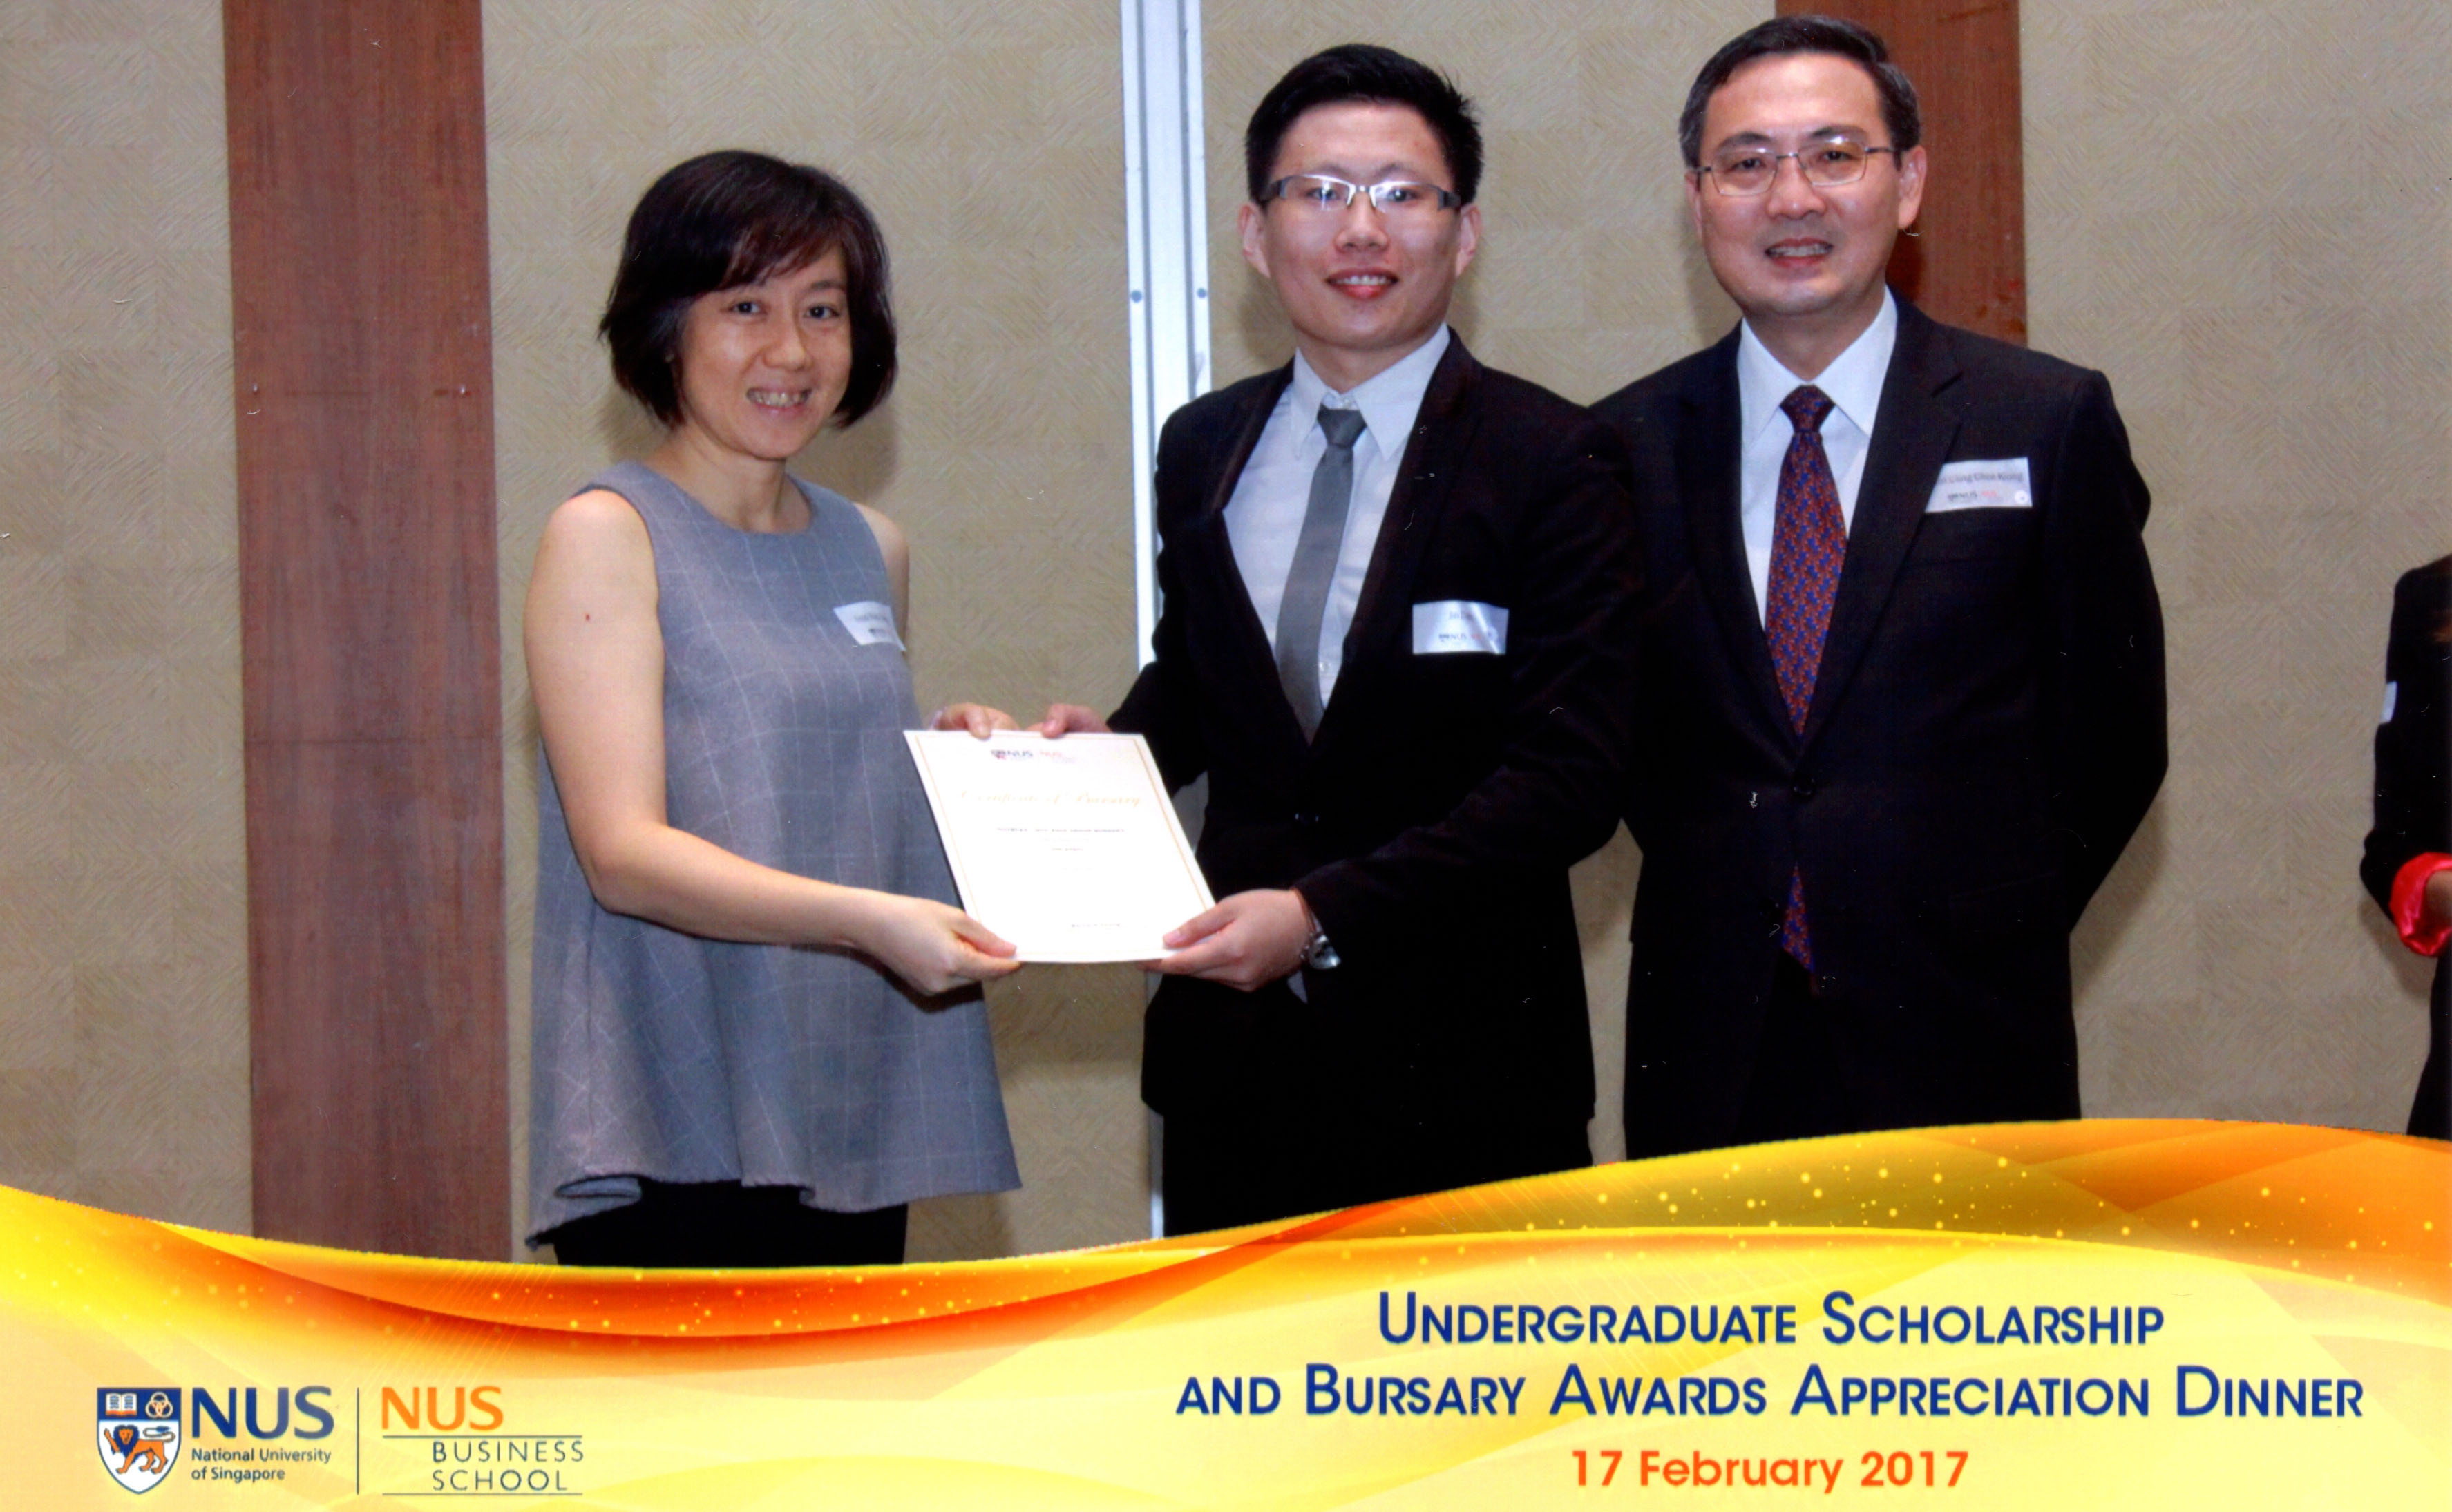 MHC Asia Group Bursary Awarding Certificate